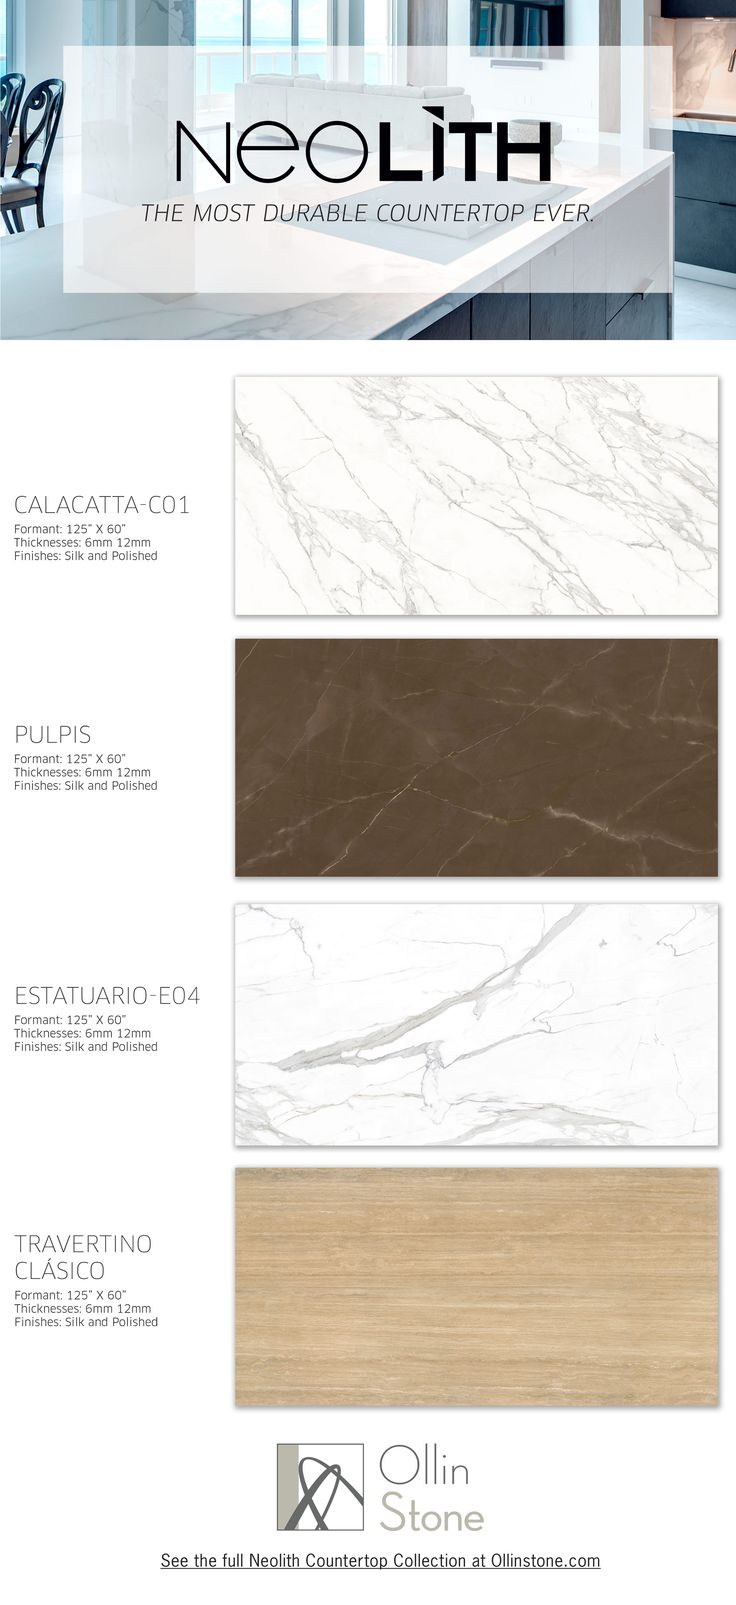 Neolith Sintered Slabs make for the most durable yet  beautifully designed countertop surface on the market. Neolith Slab are also a great solution for flooring & walls. See the full collection at: http://ollinstone.com/product-category/neolith-compact-surfaces/